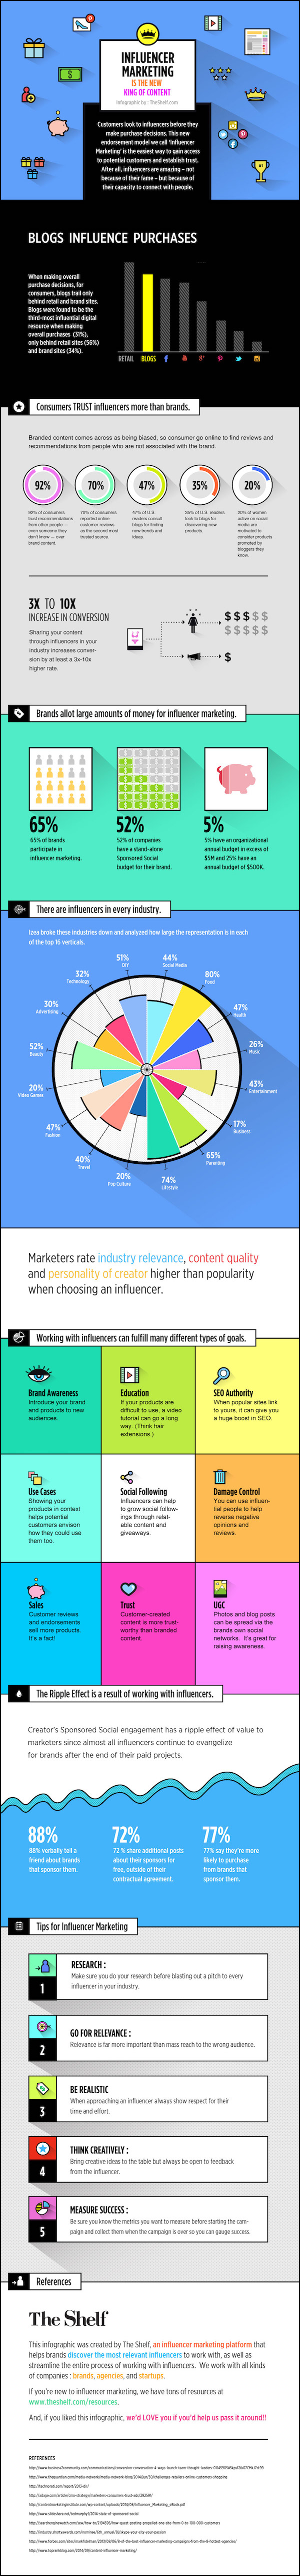 Infographic on Infuencer Marketing